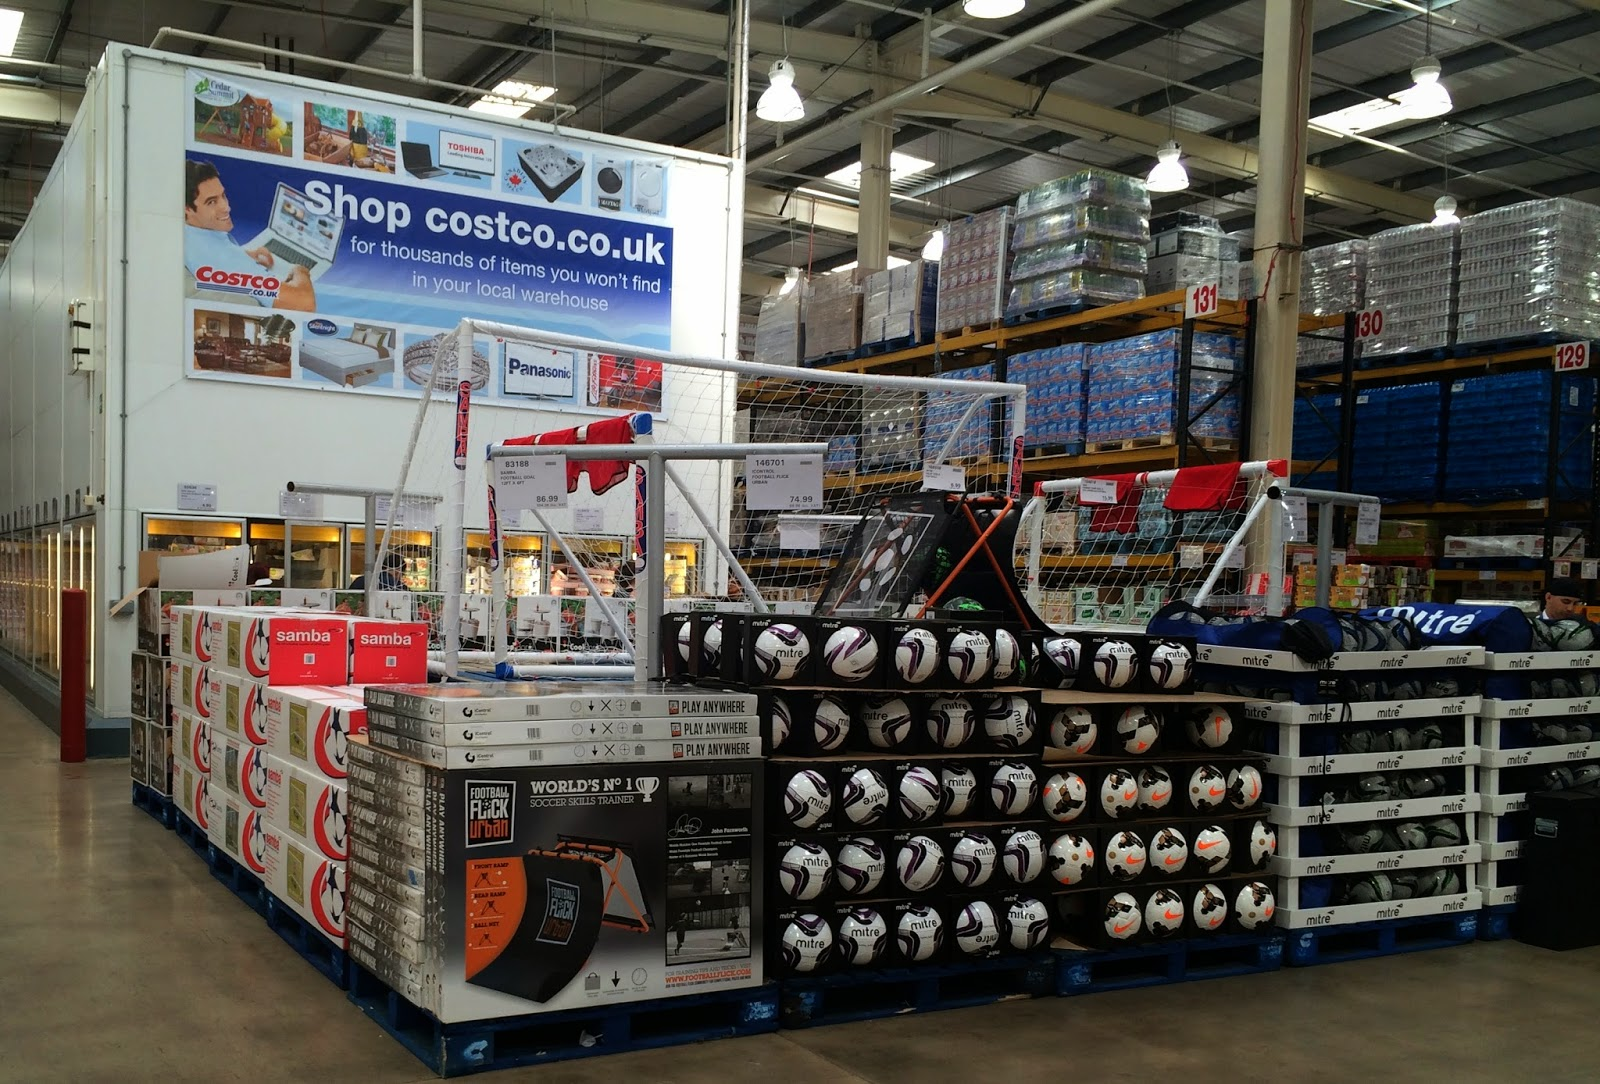 Whirlpool white ice costco canada - When Youu0027re Remodeling And Your House Youu0027re Always On The Look Out For Fixtures Appliances And Furniture I Came Across This Beautiful White